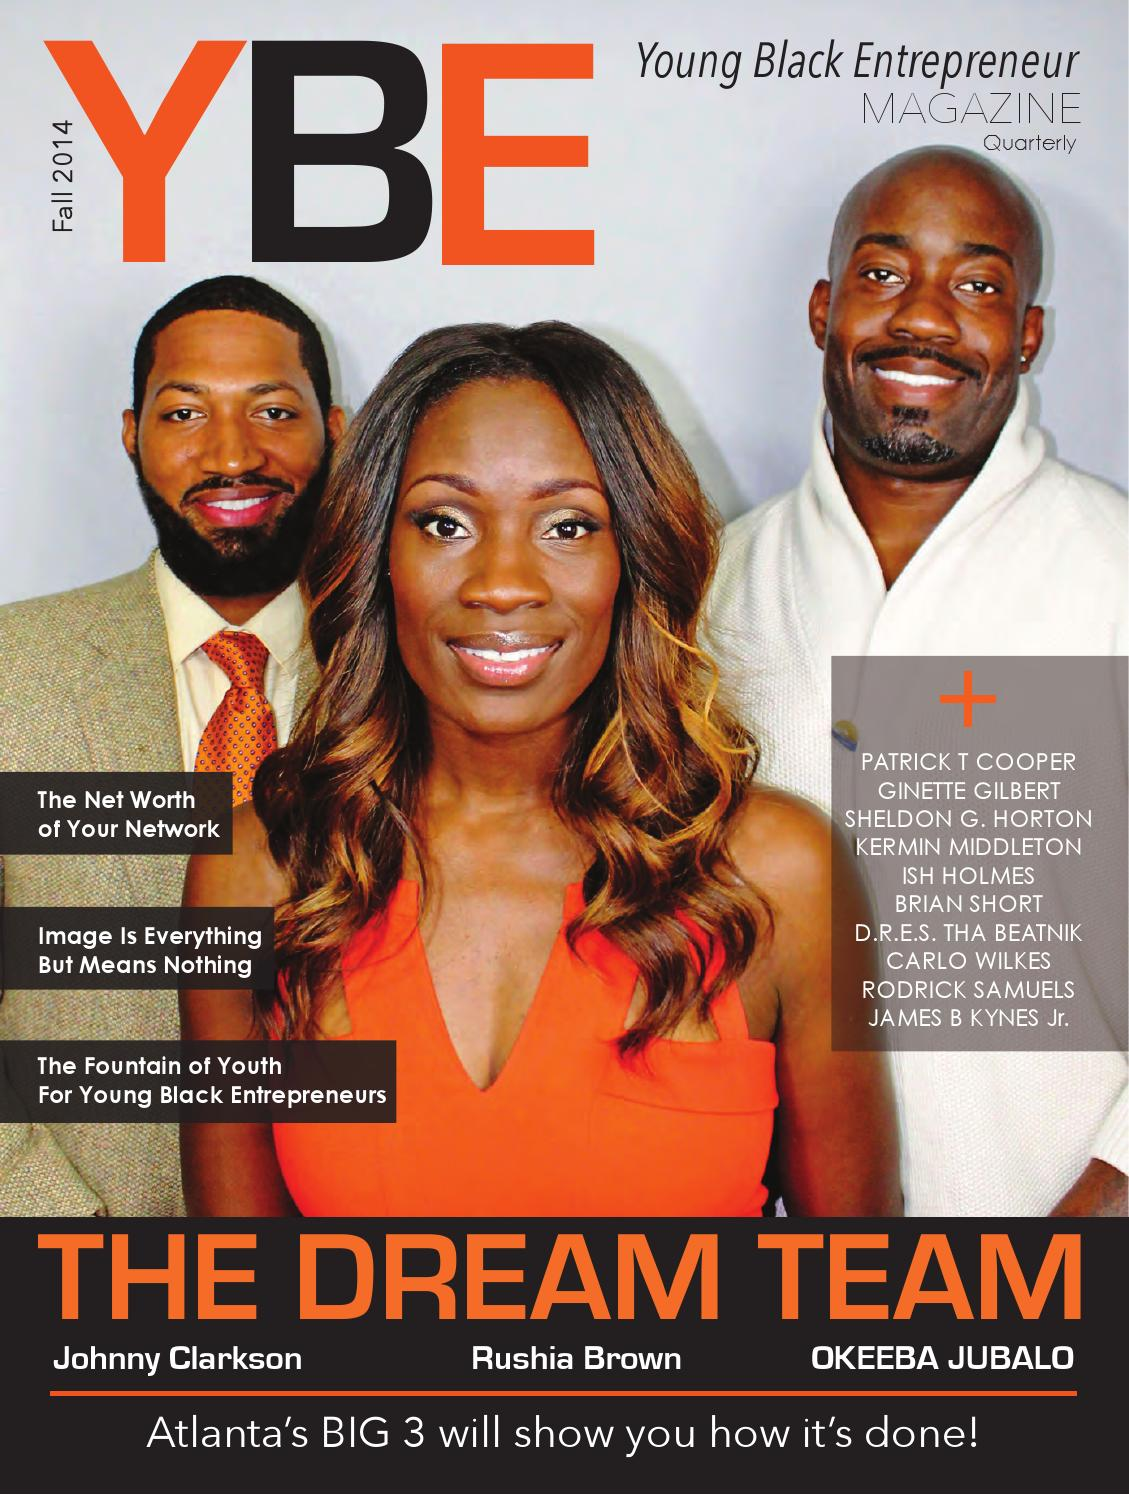 young black entrepreneur magazine by noblesol art group